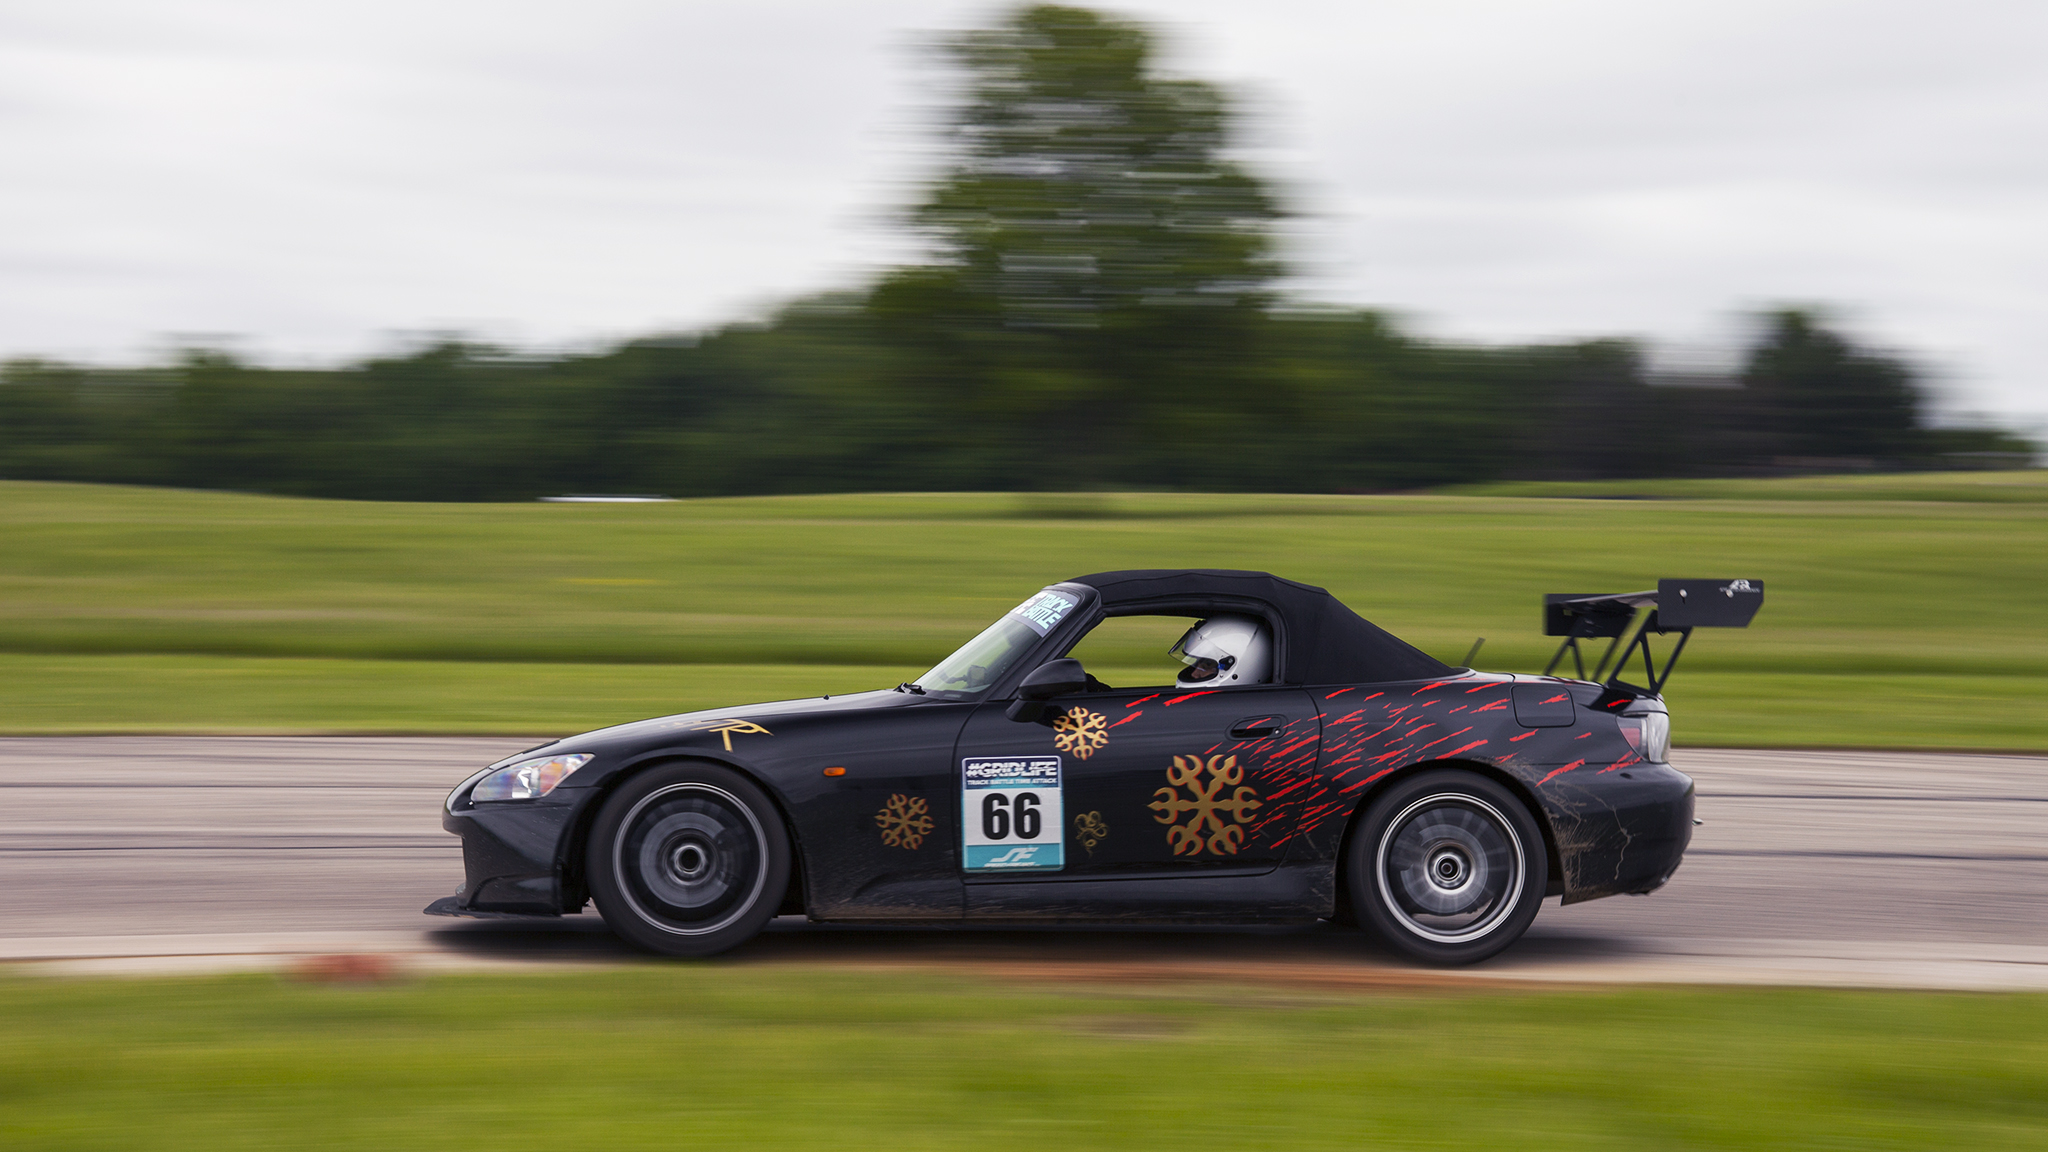 Twerk Team Racing  has a couple S2000's competing in street tire class. We look forward to seeing the friendly battles.